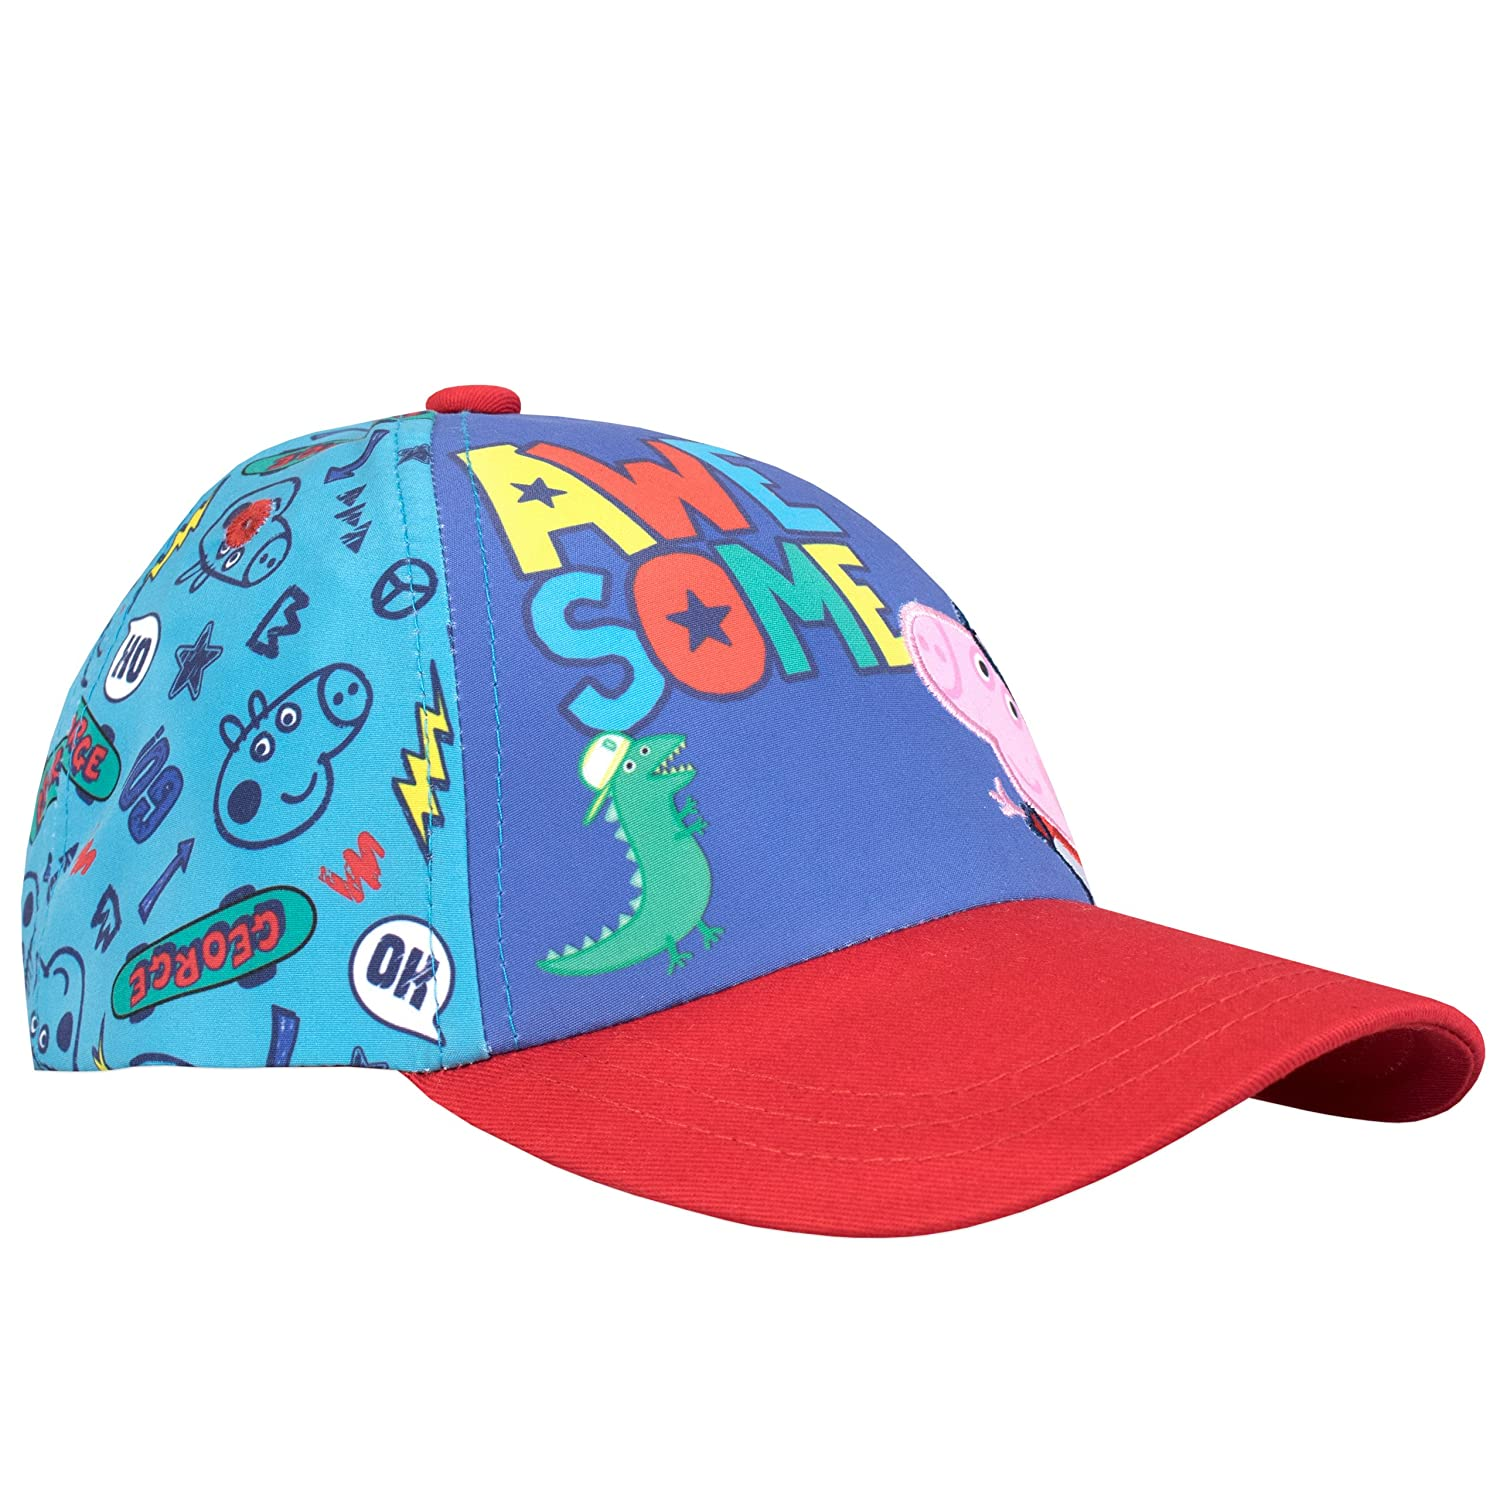 Amazon.com: Peppa Pig Boys George Pig gorra de béisbol ...